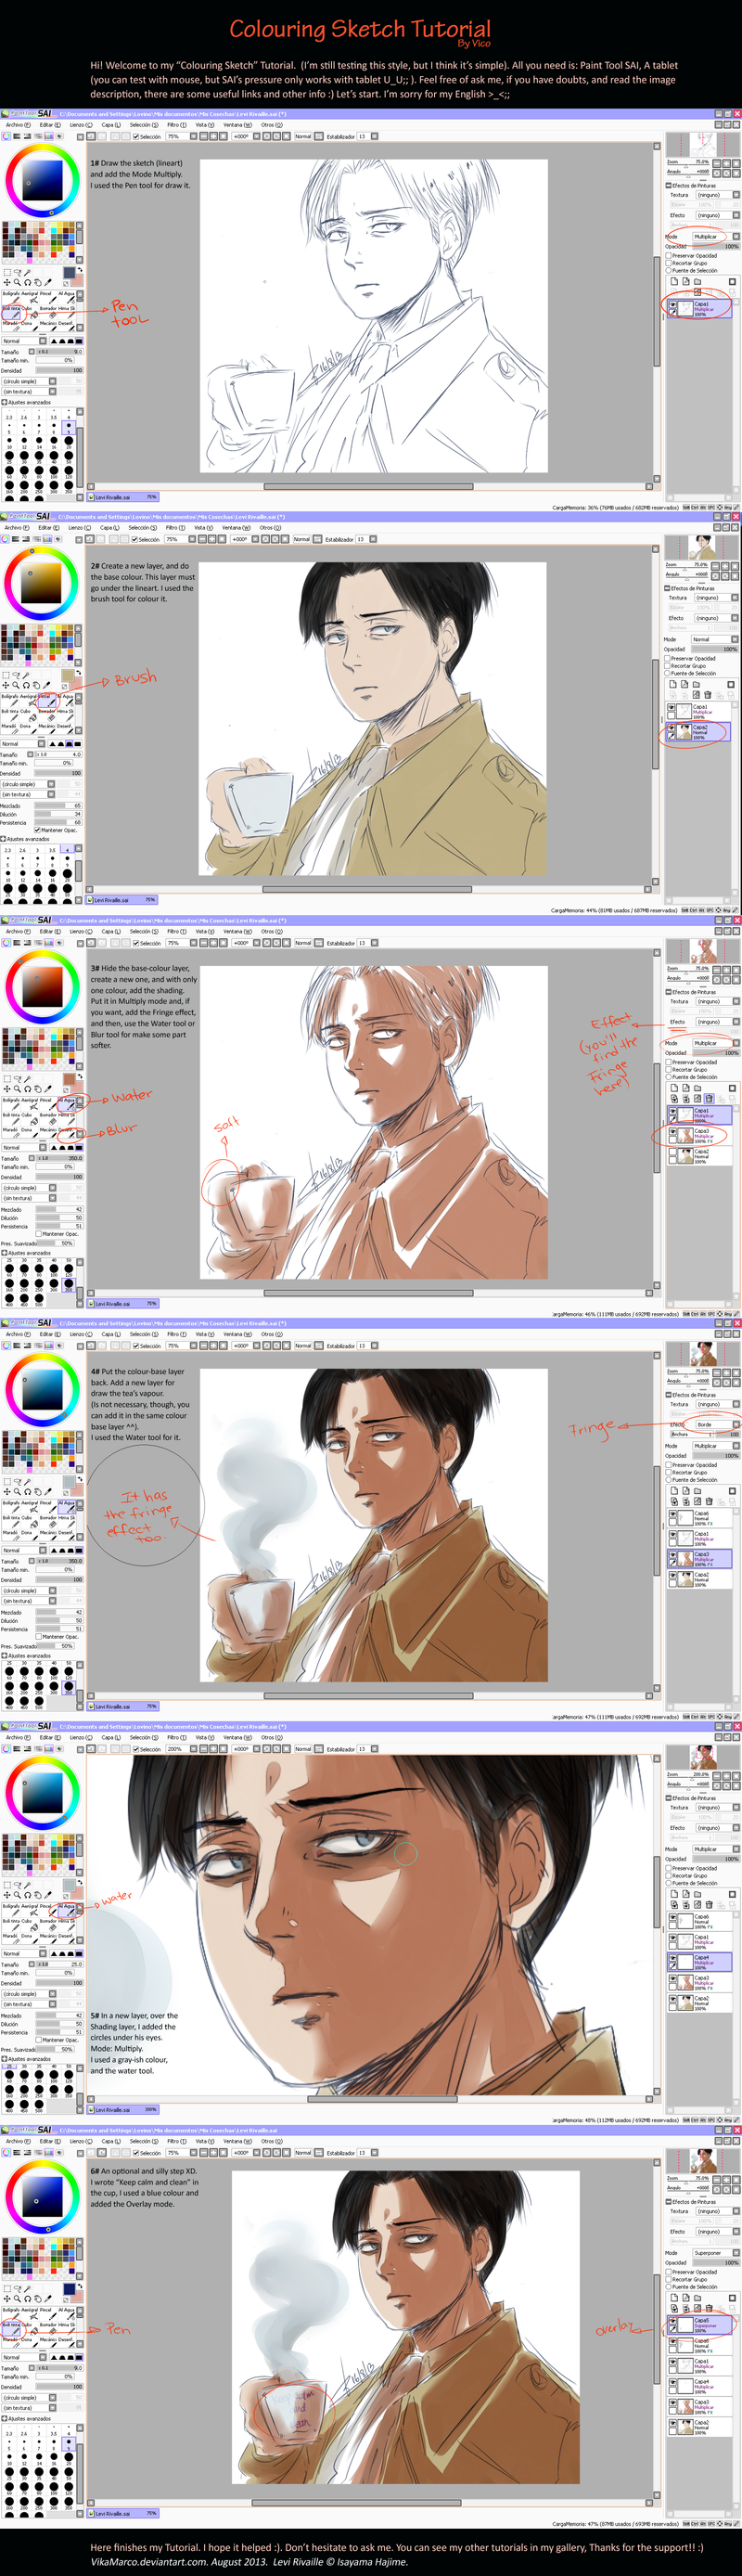 SAI. Colouring Sketch - Tutorial - Levi by AkariMarco